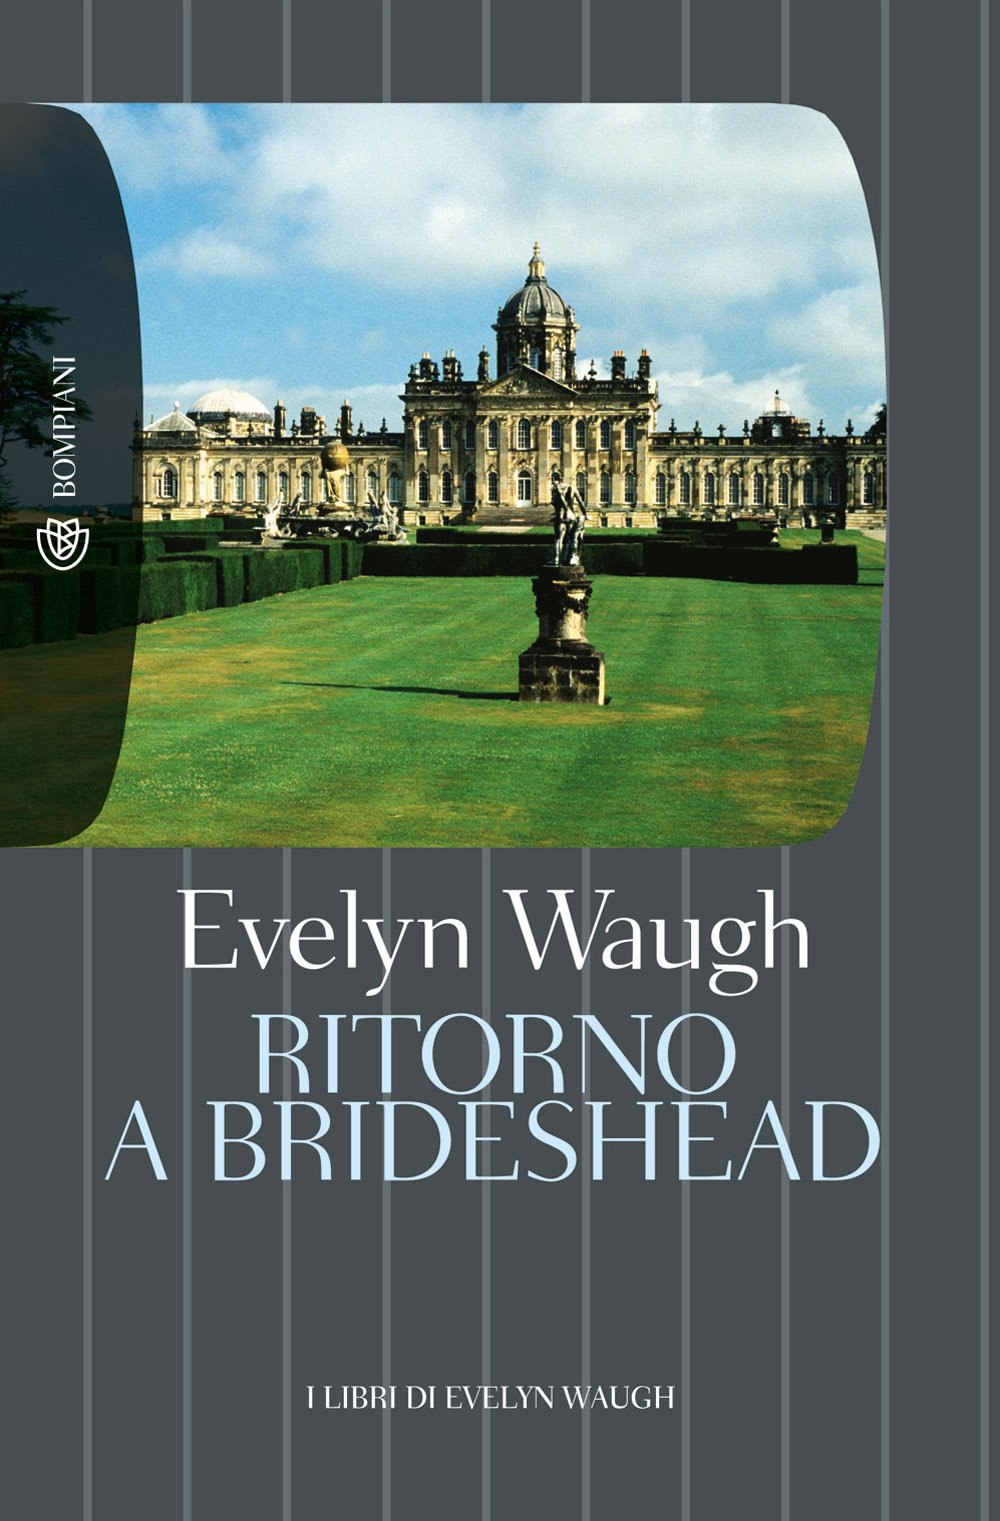 Evelyn Waugh, Ritorno a Brideshead